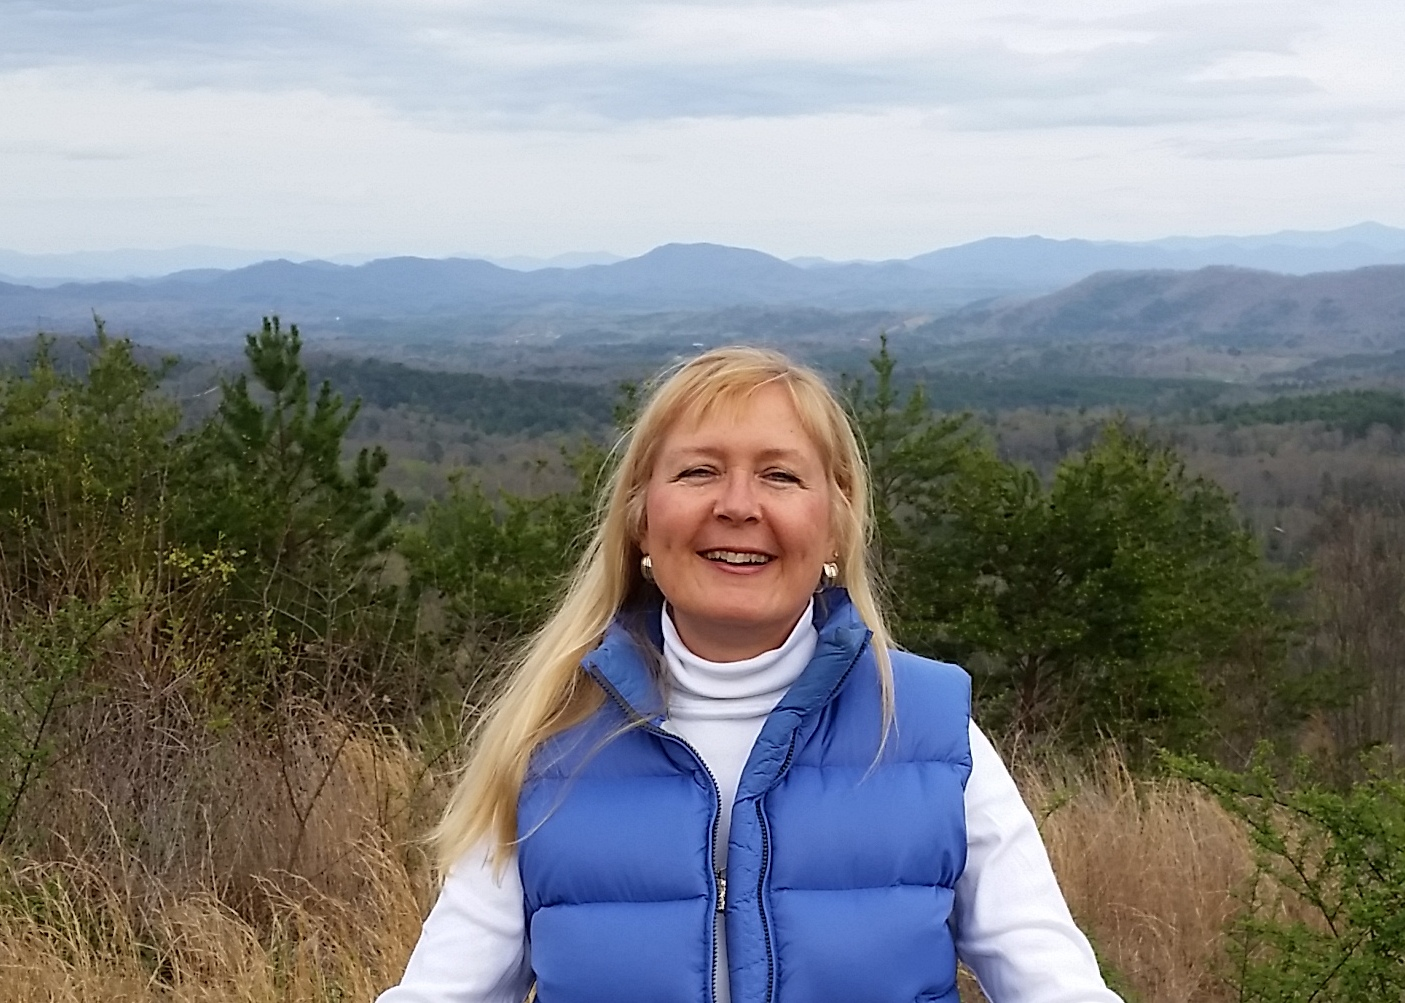 Episode 41 of the Phoenix Helix Podcast: EFT with Dr. Anne Merkel